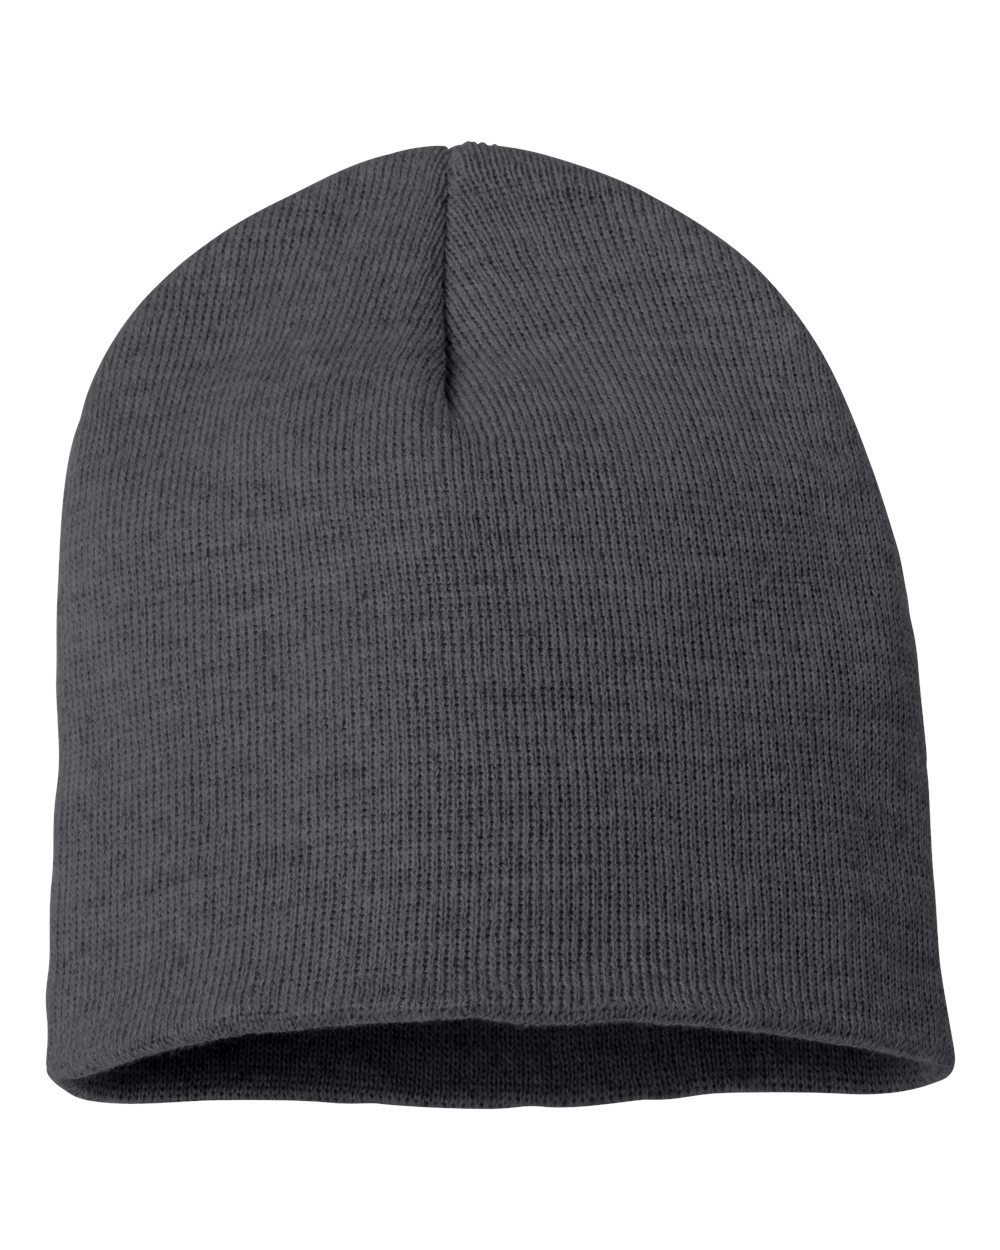 Method Chicago Screen Printing - Sportsman - 8 Inch Knit Beanie - SP08